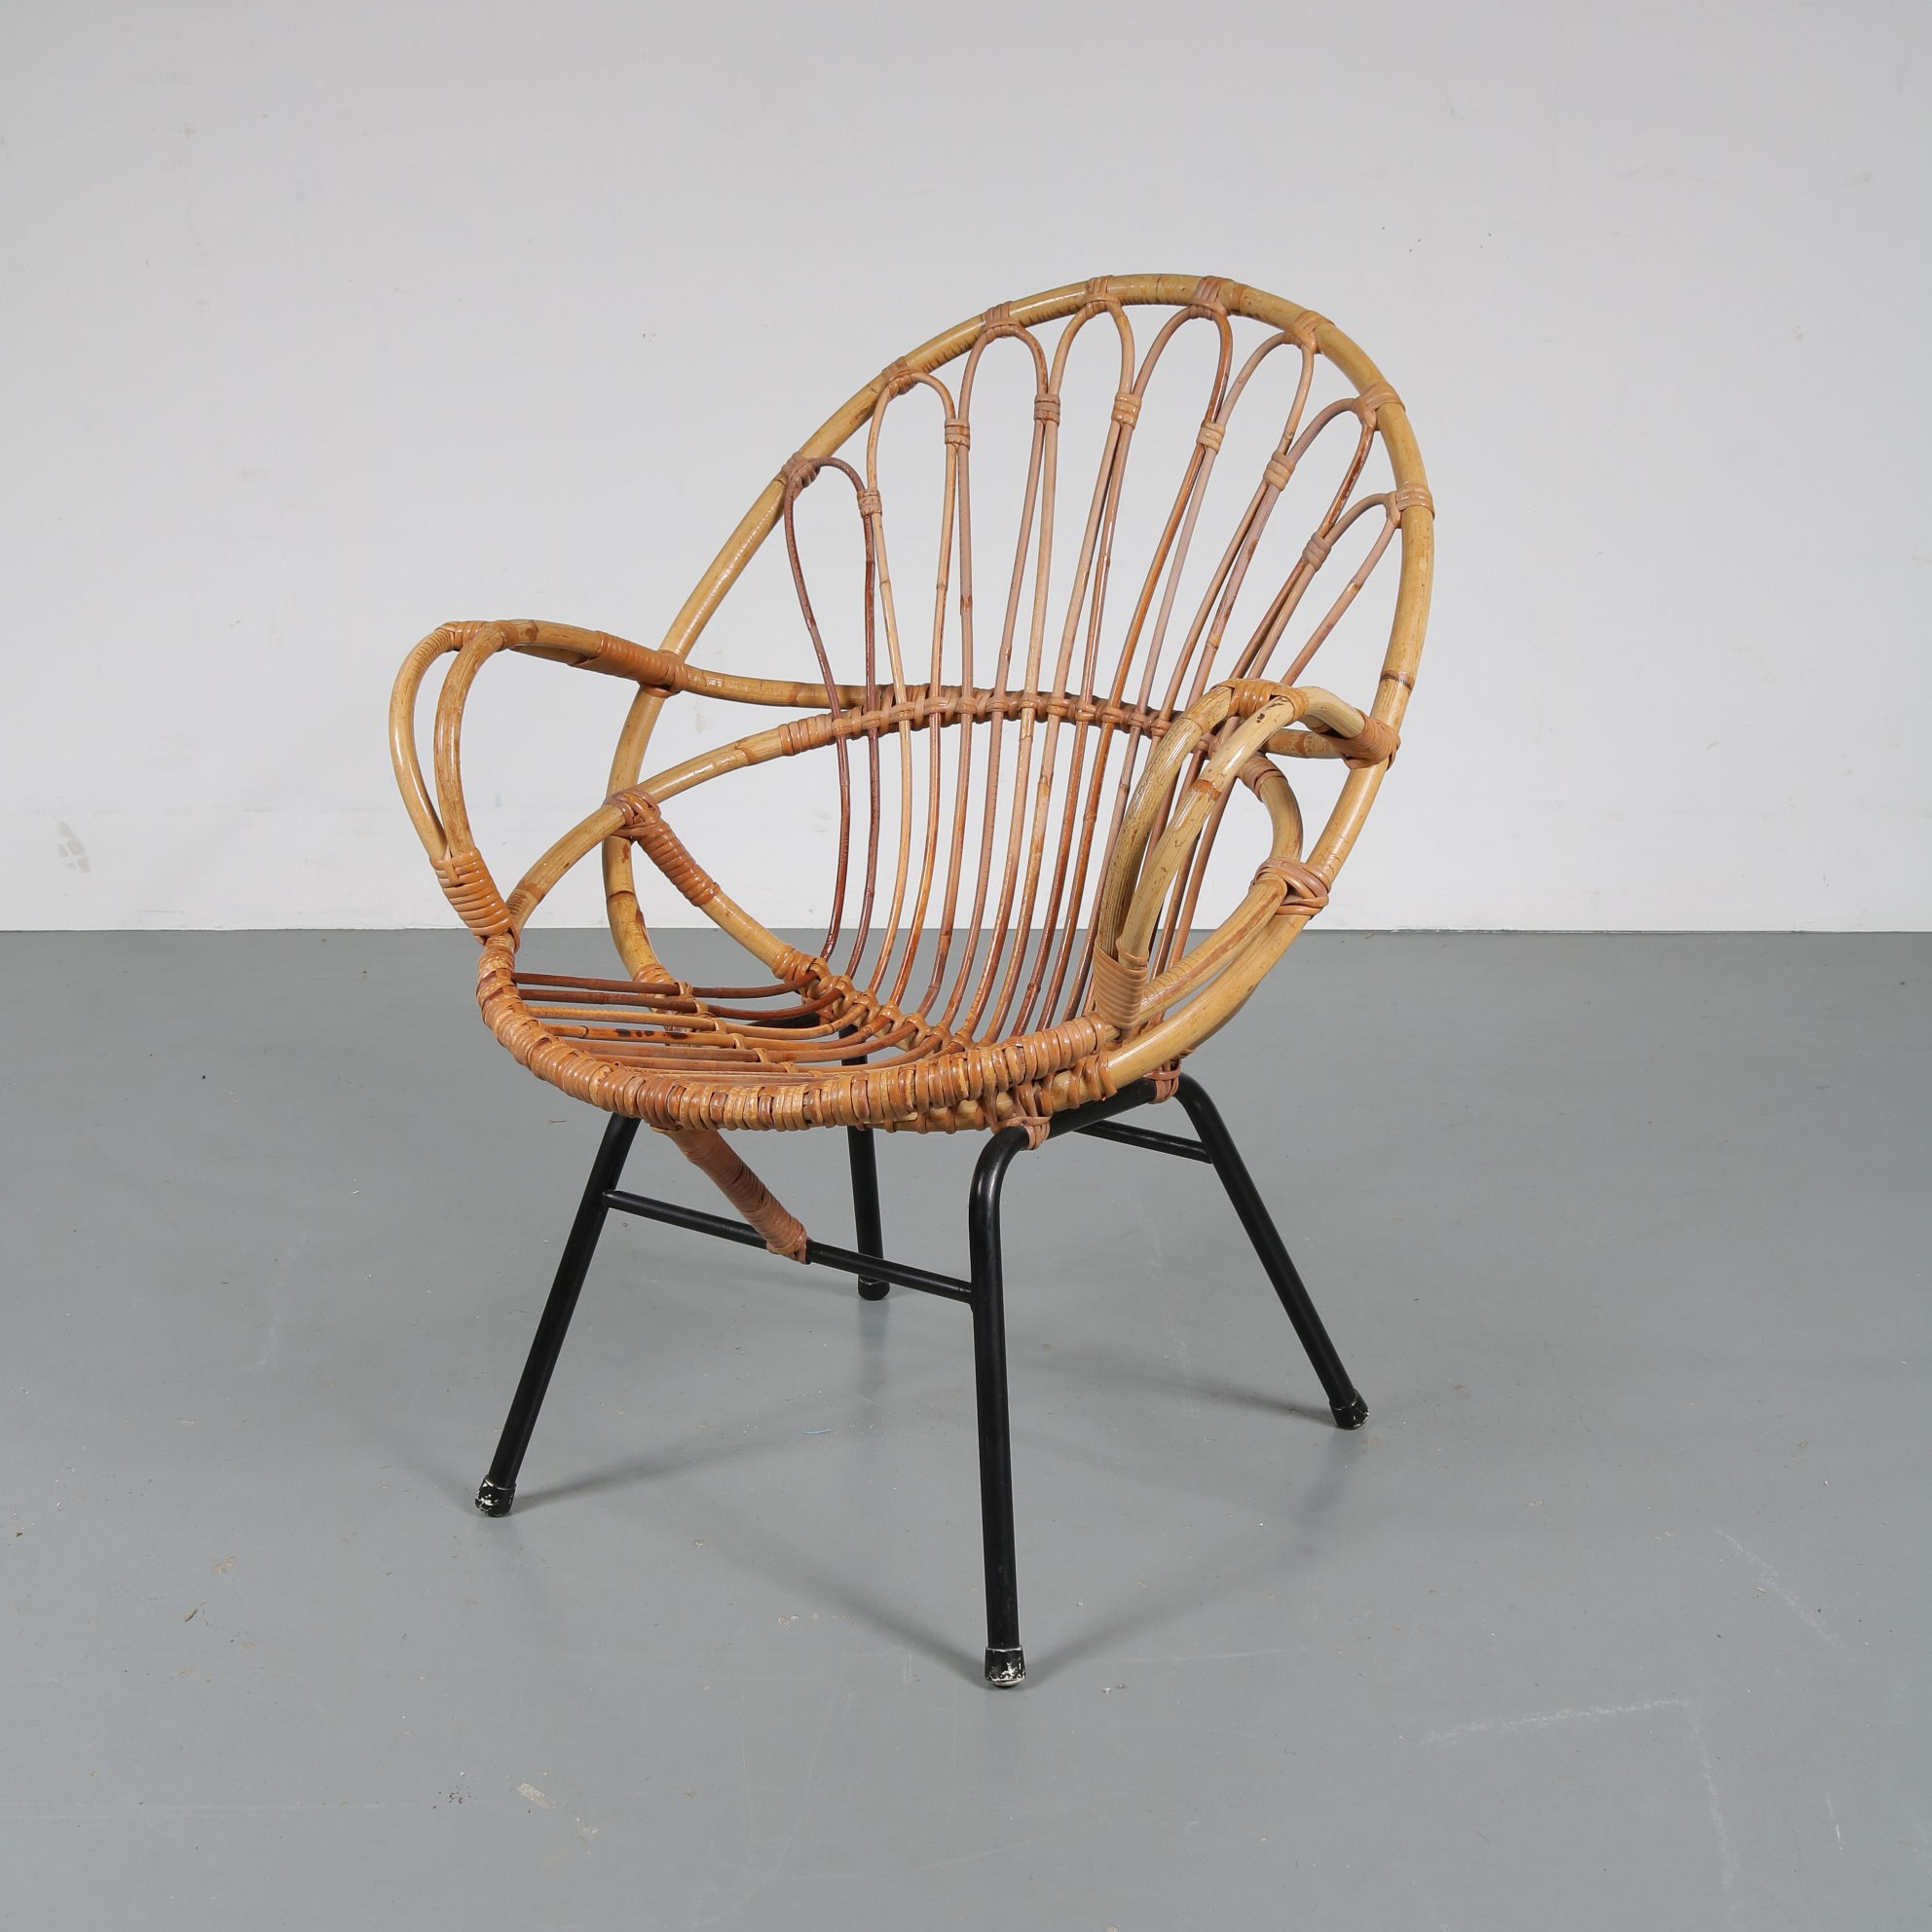 m22428 1950s Round rattan chair with armrests on black metal base Gebroeders Jonkers / Netherlands